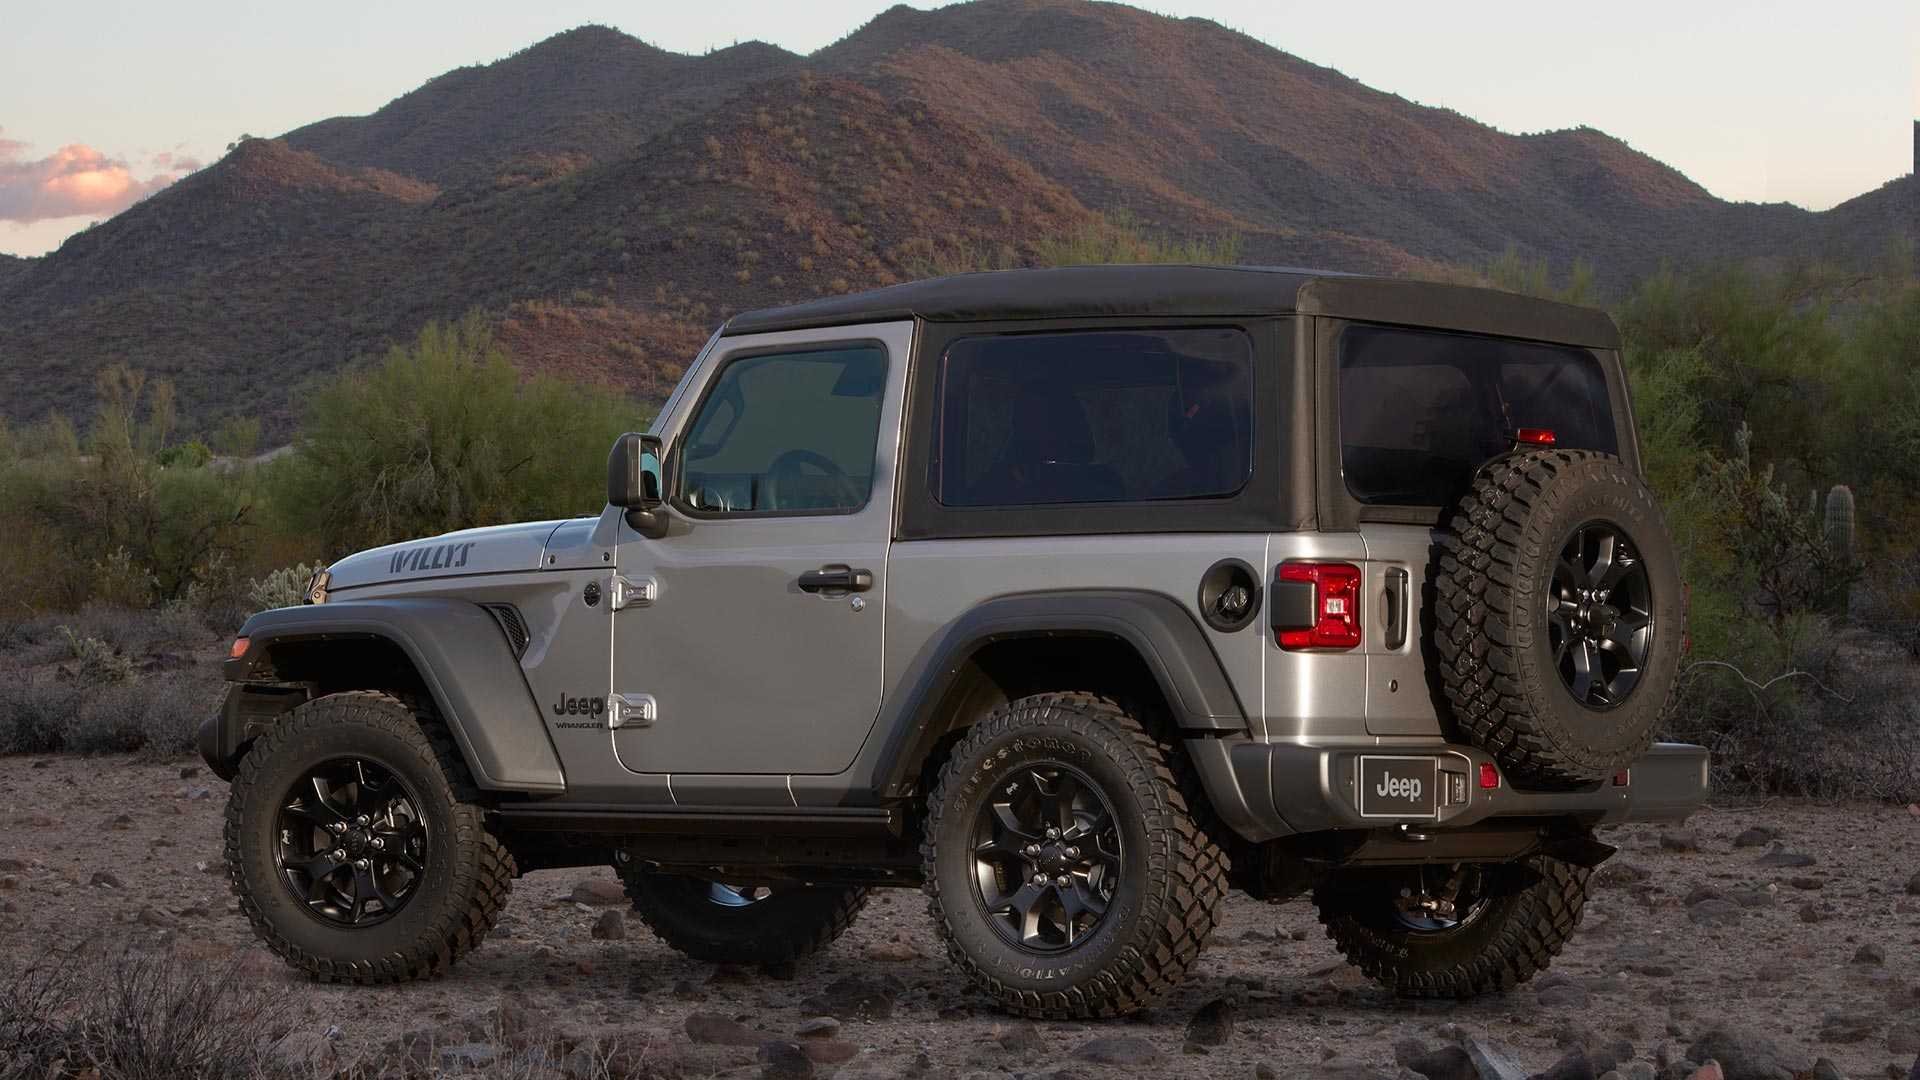 2020 Jeep Wrangler Willys And Black Tan Editions Arrive In Style